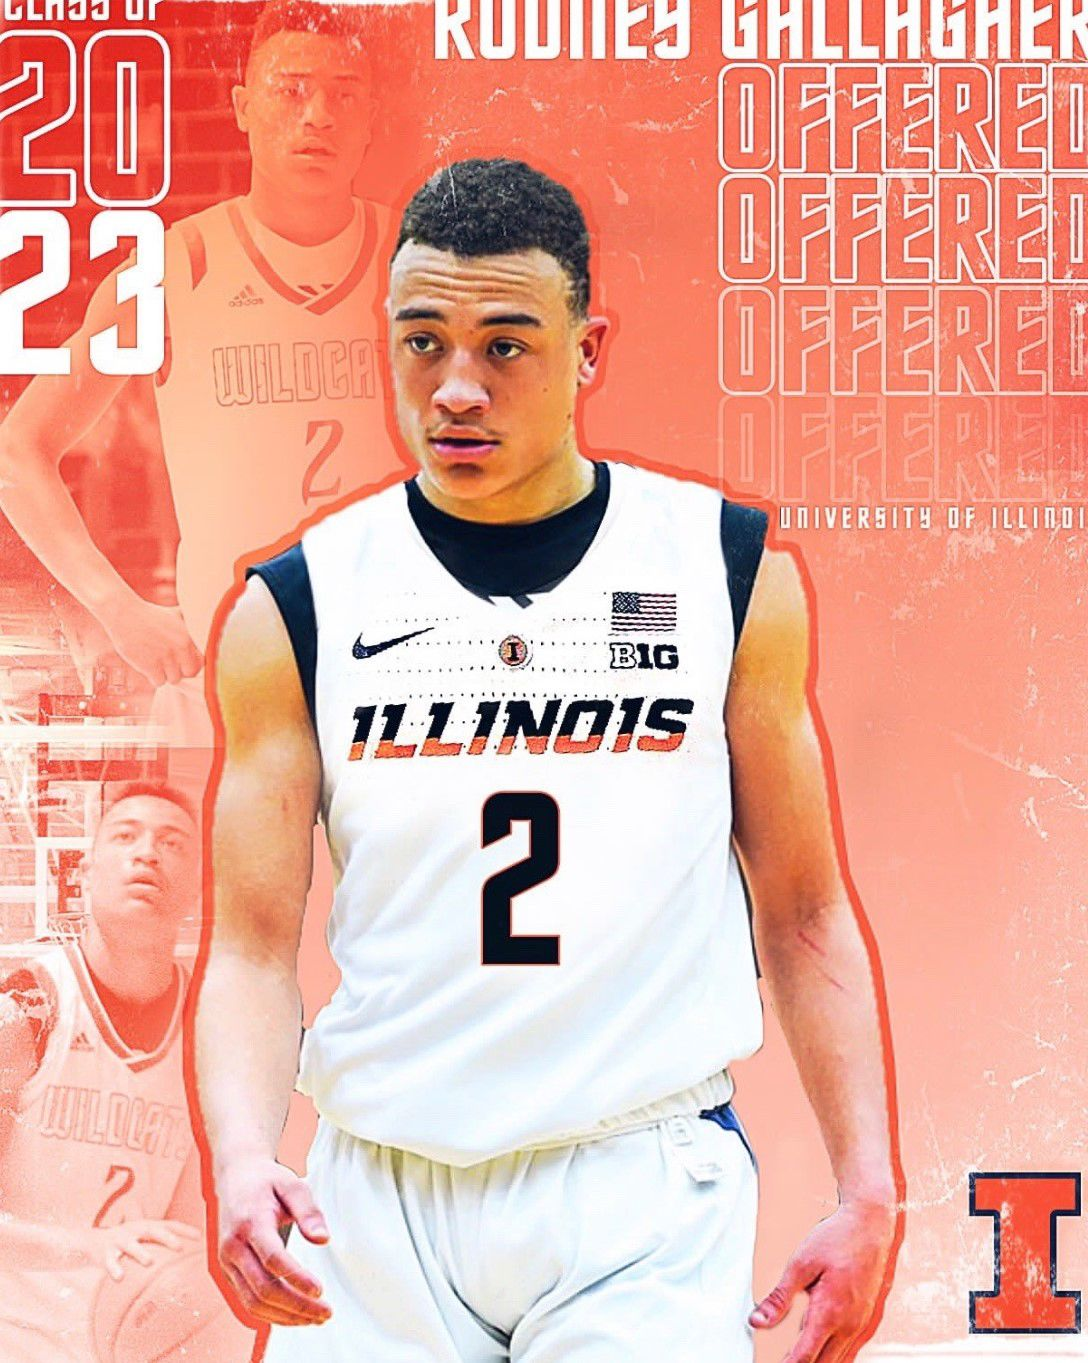 Gallagher being recruited by Illinois